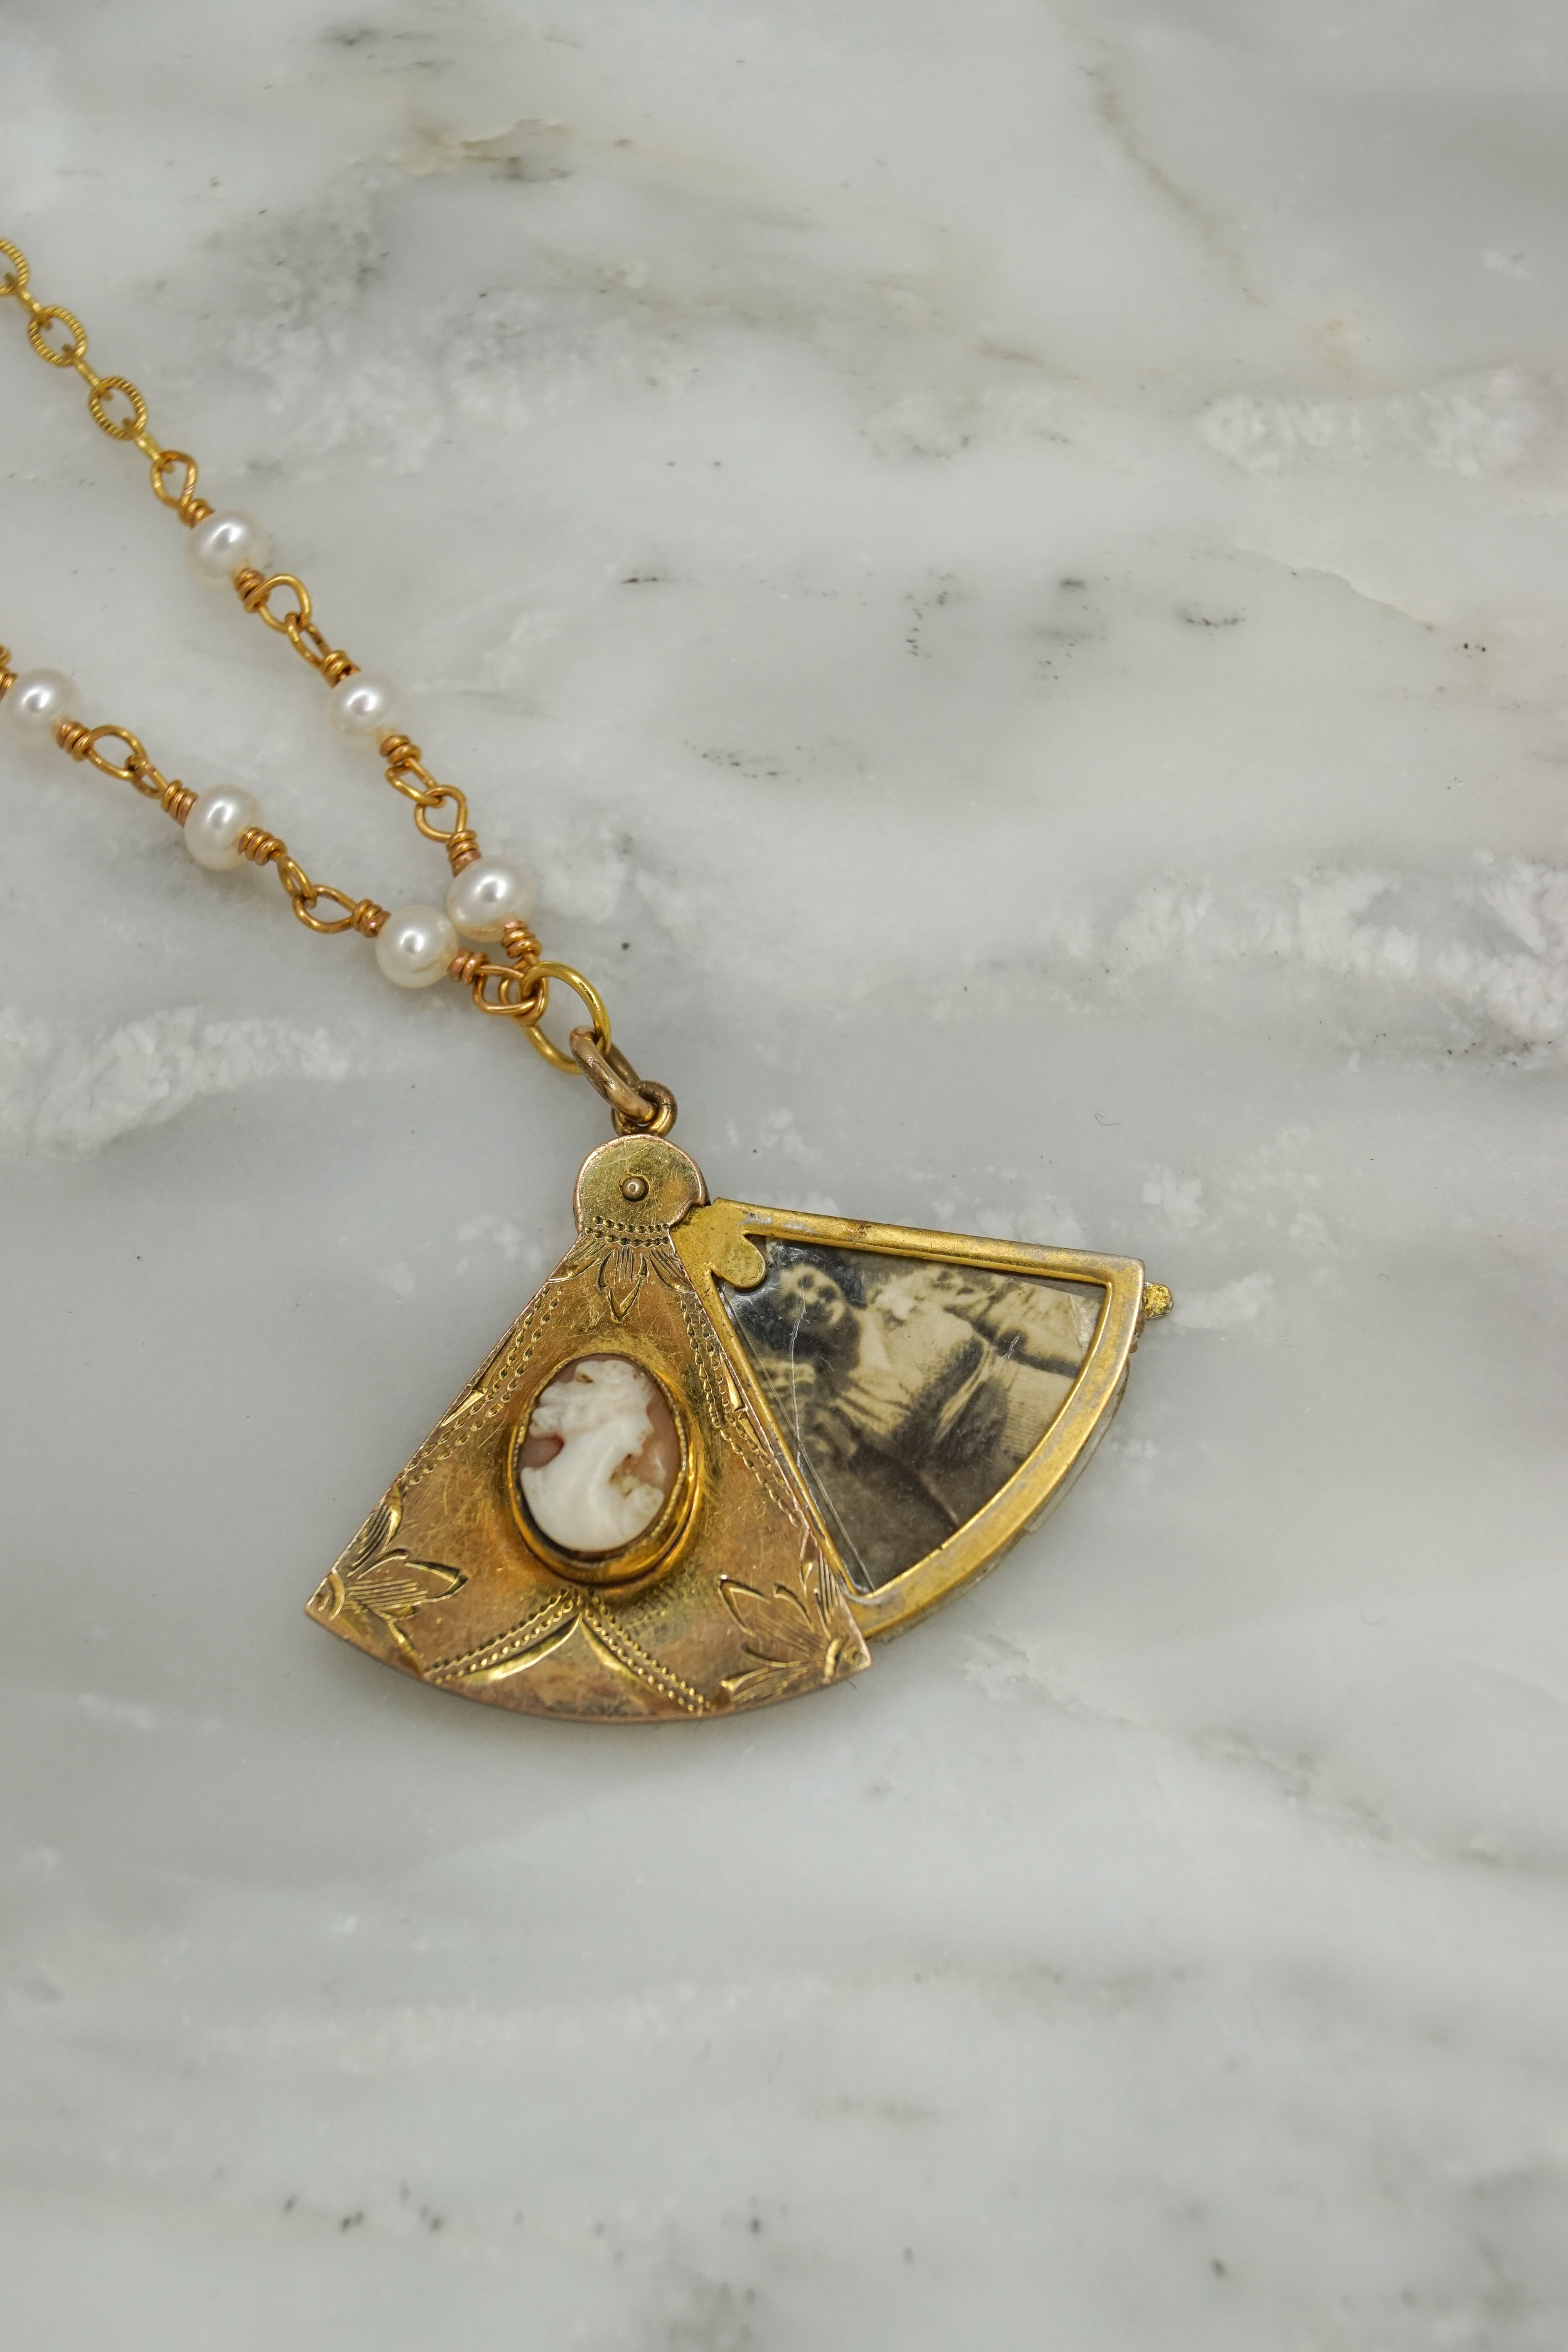 Fan-shaped gold antique locket with cameo.